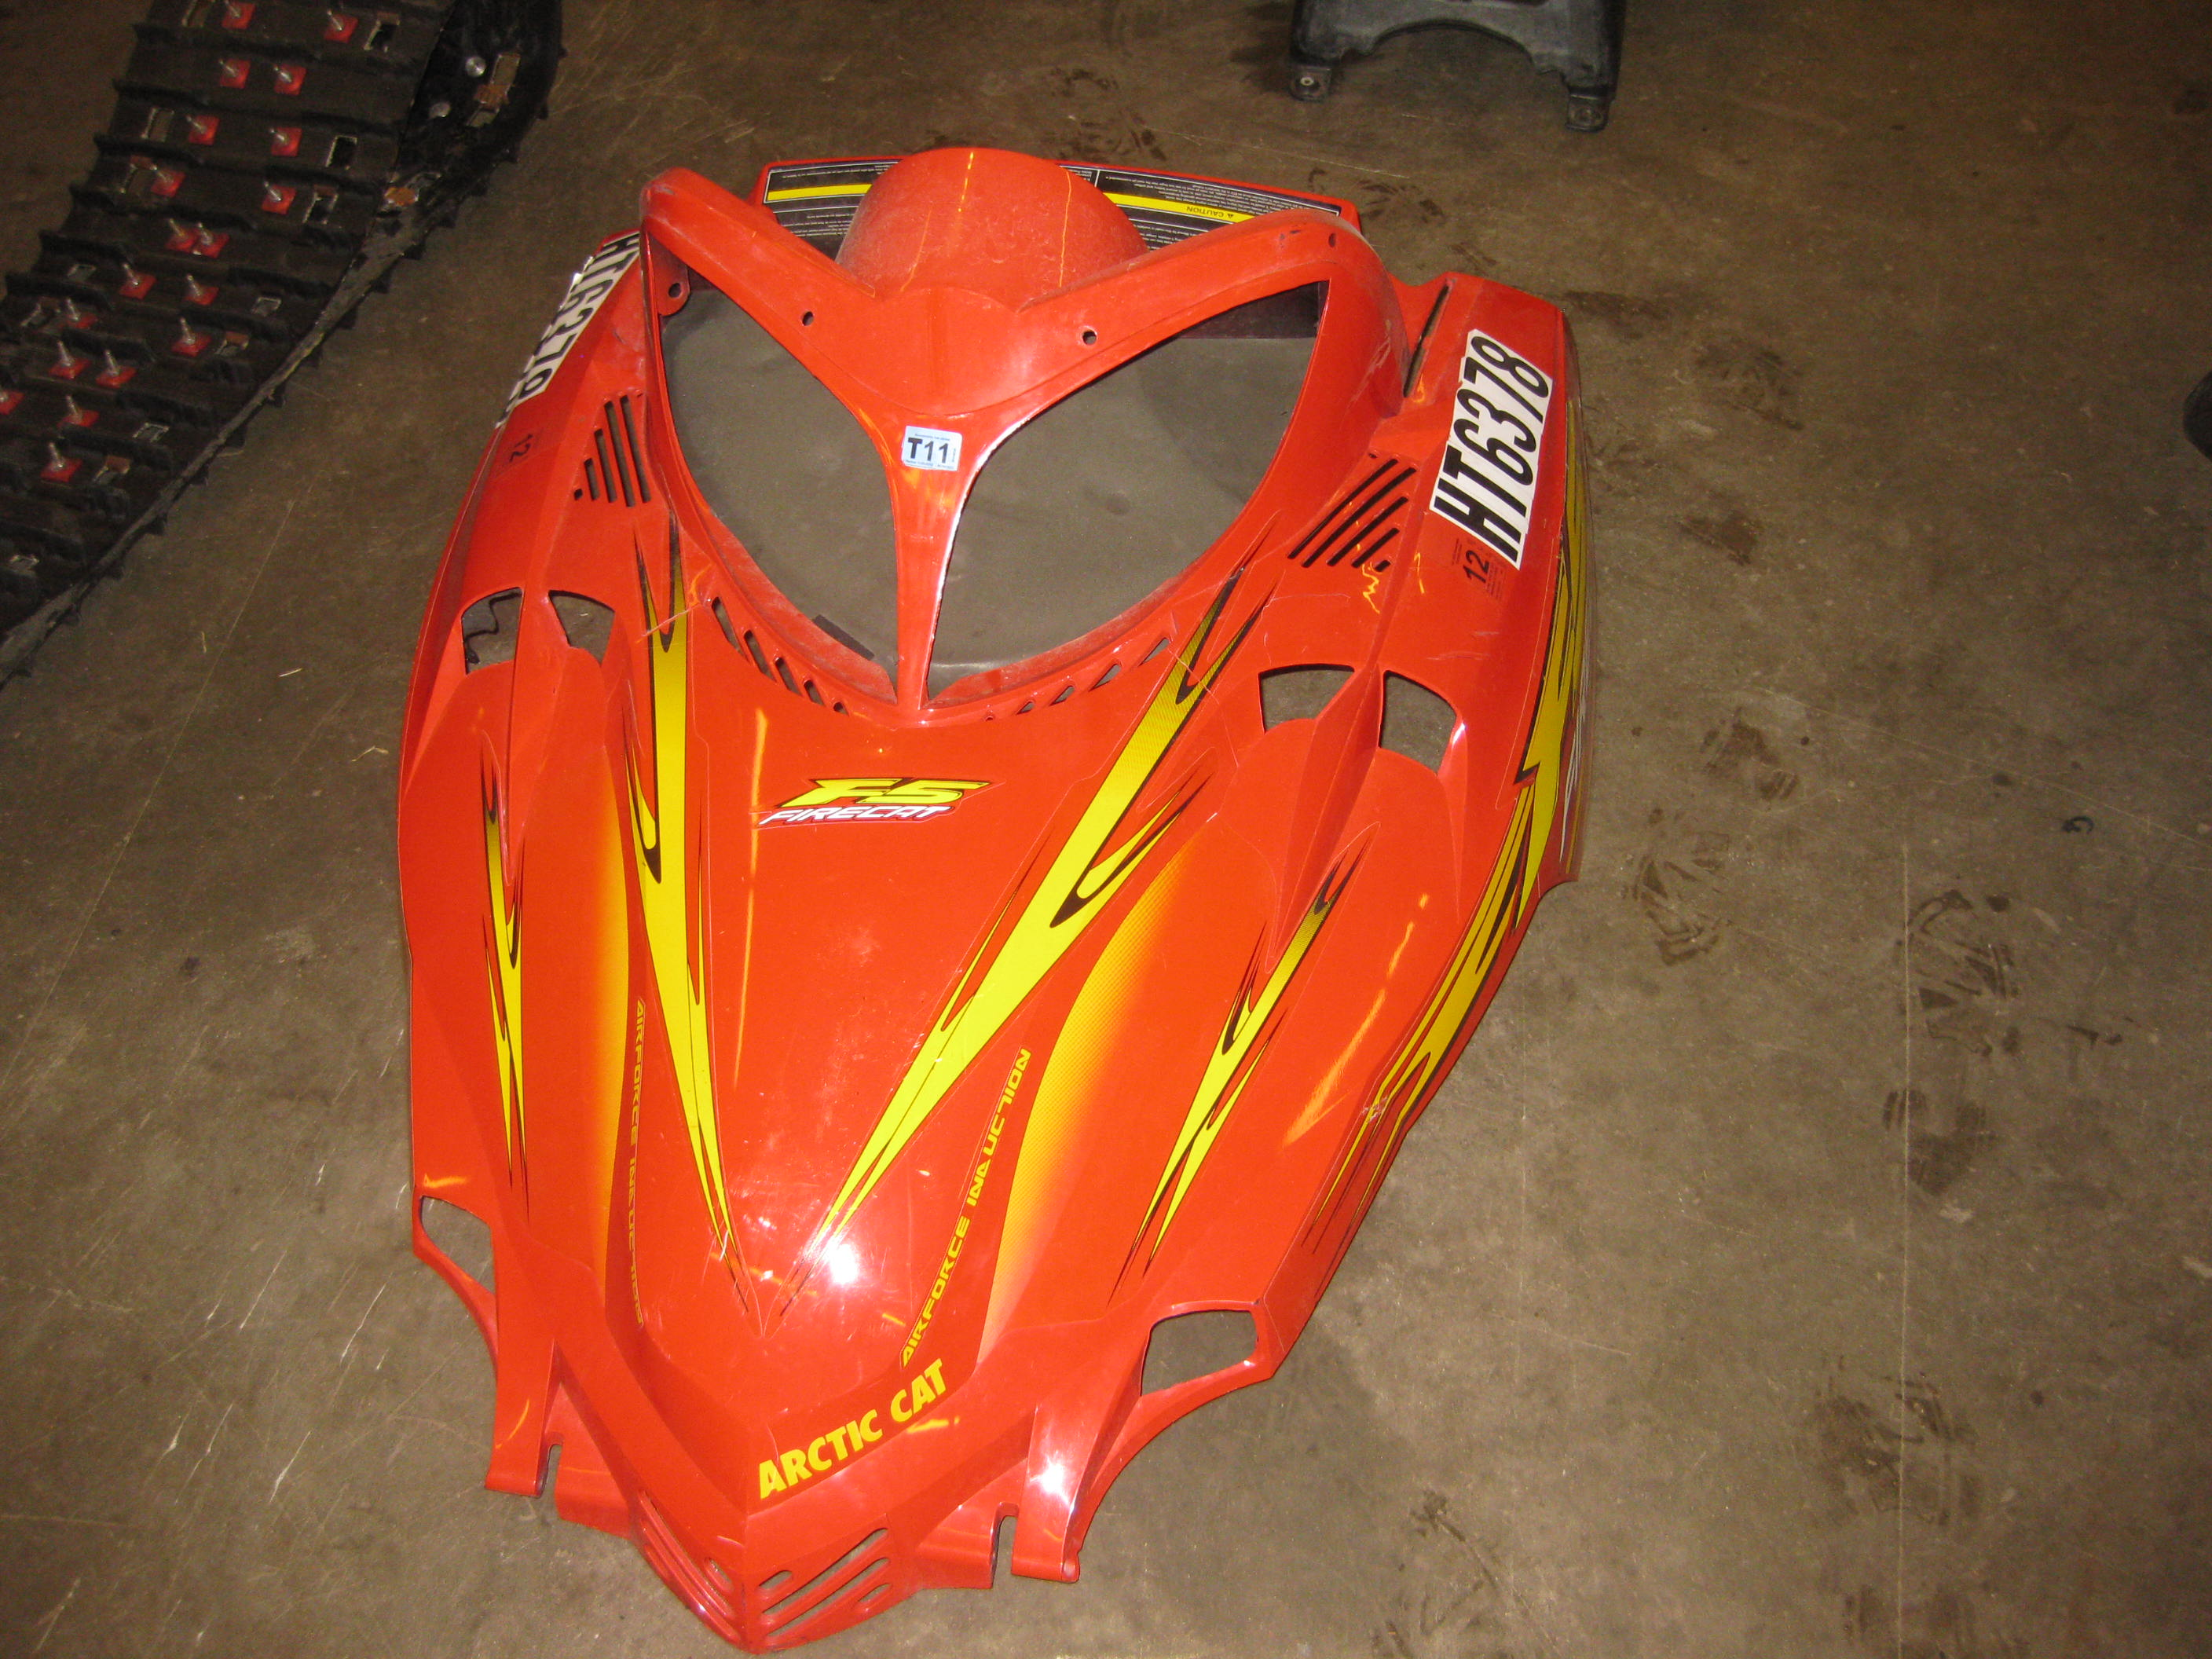 Parts available from 2003 Arctic Cat F5